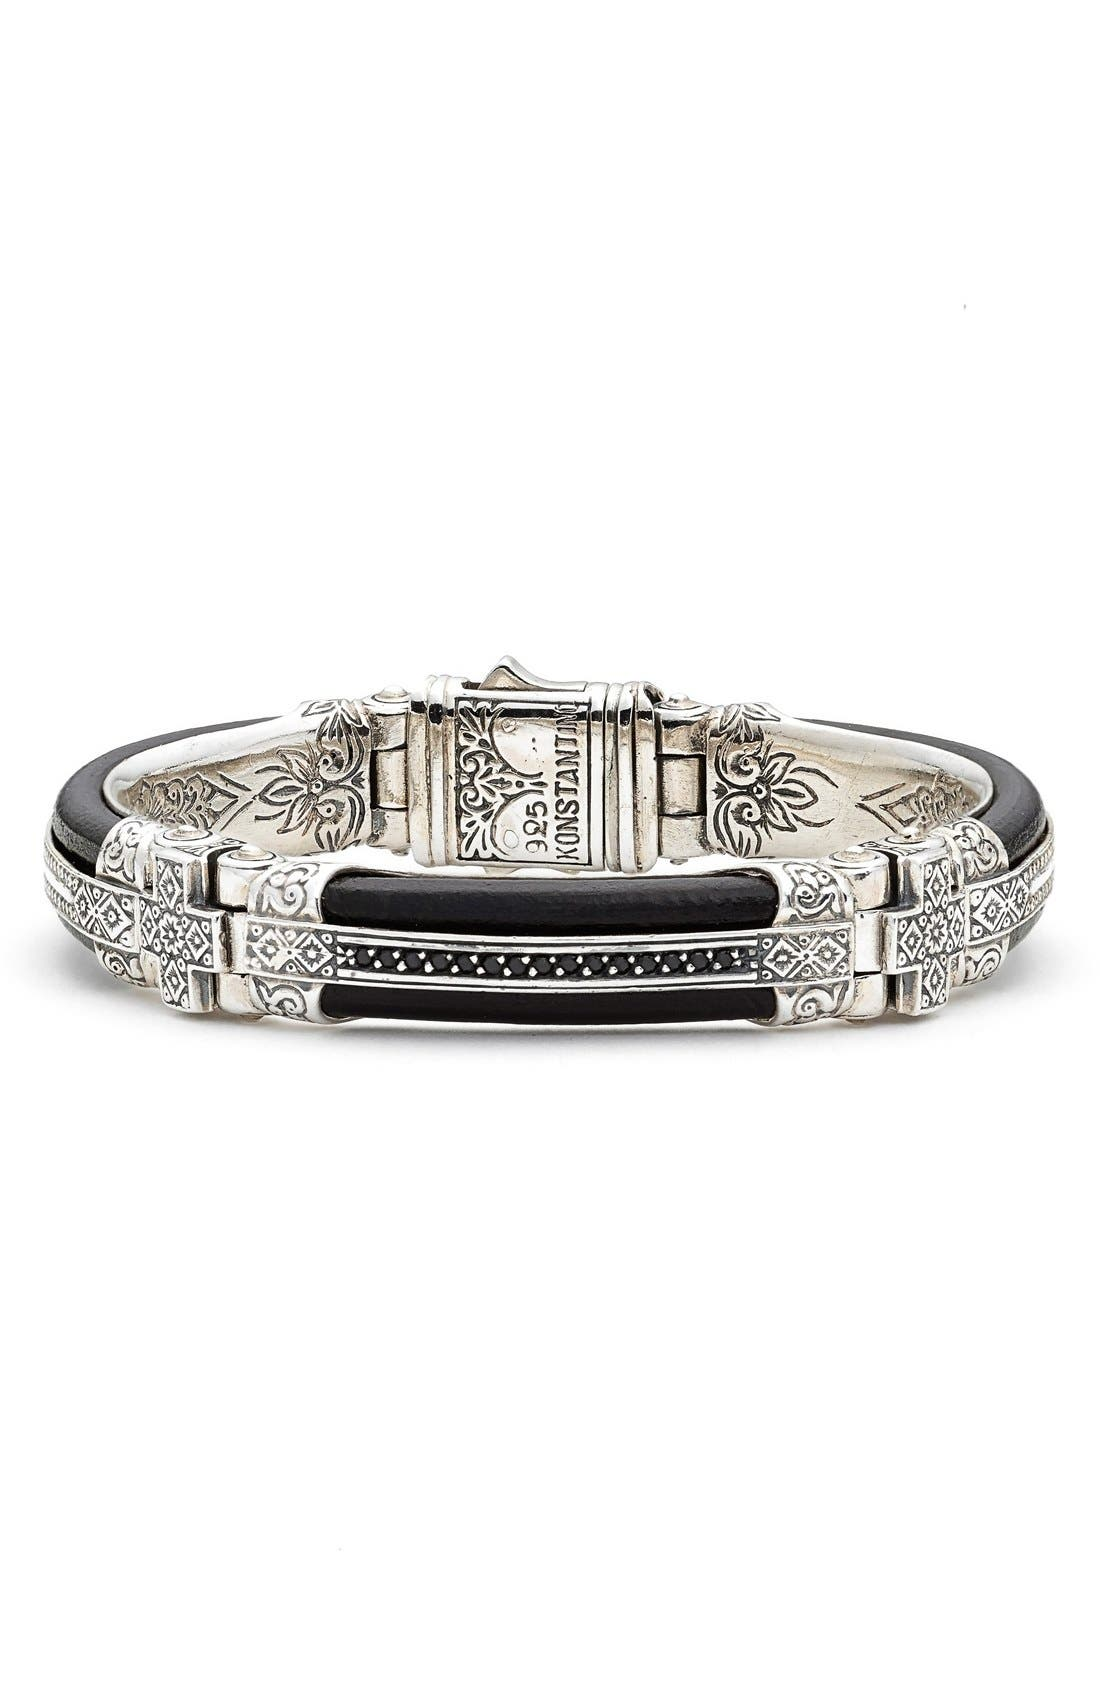 Plato Etched Sterling Silver & Leather Bracelet,                             Main thumbnail 1, color,                             040